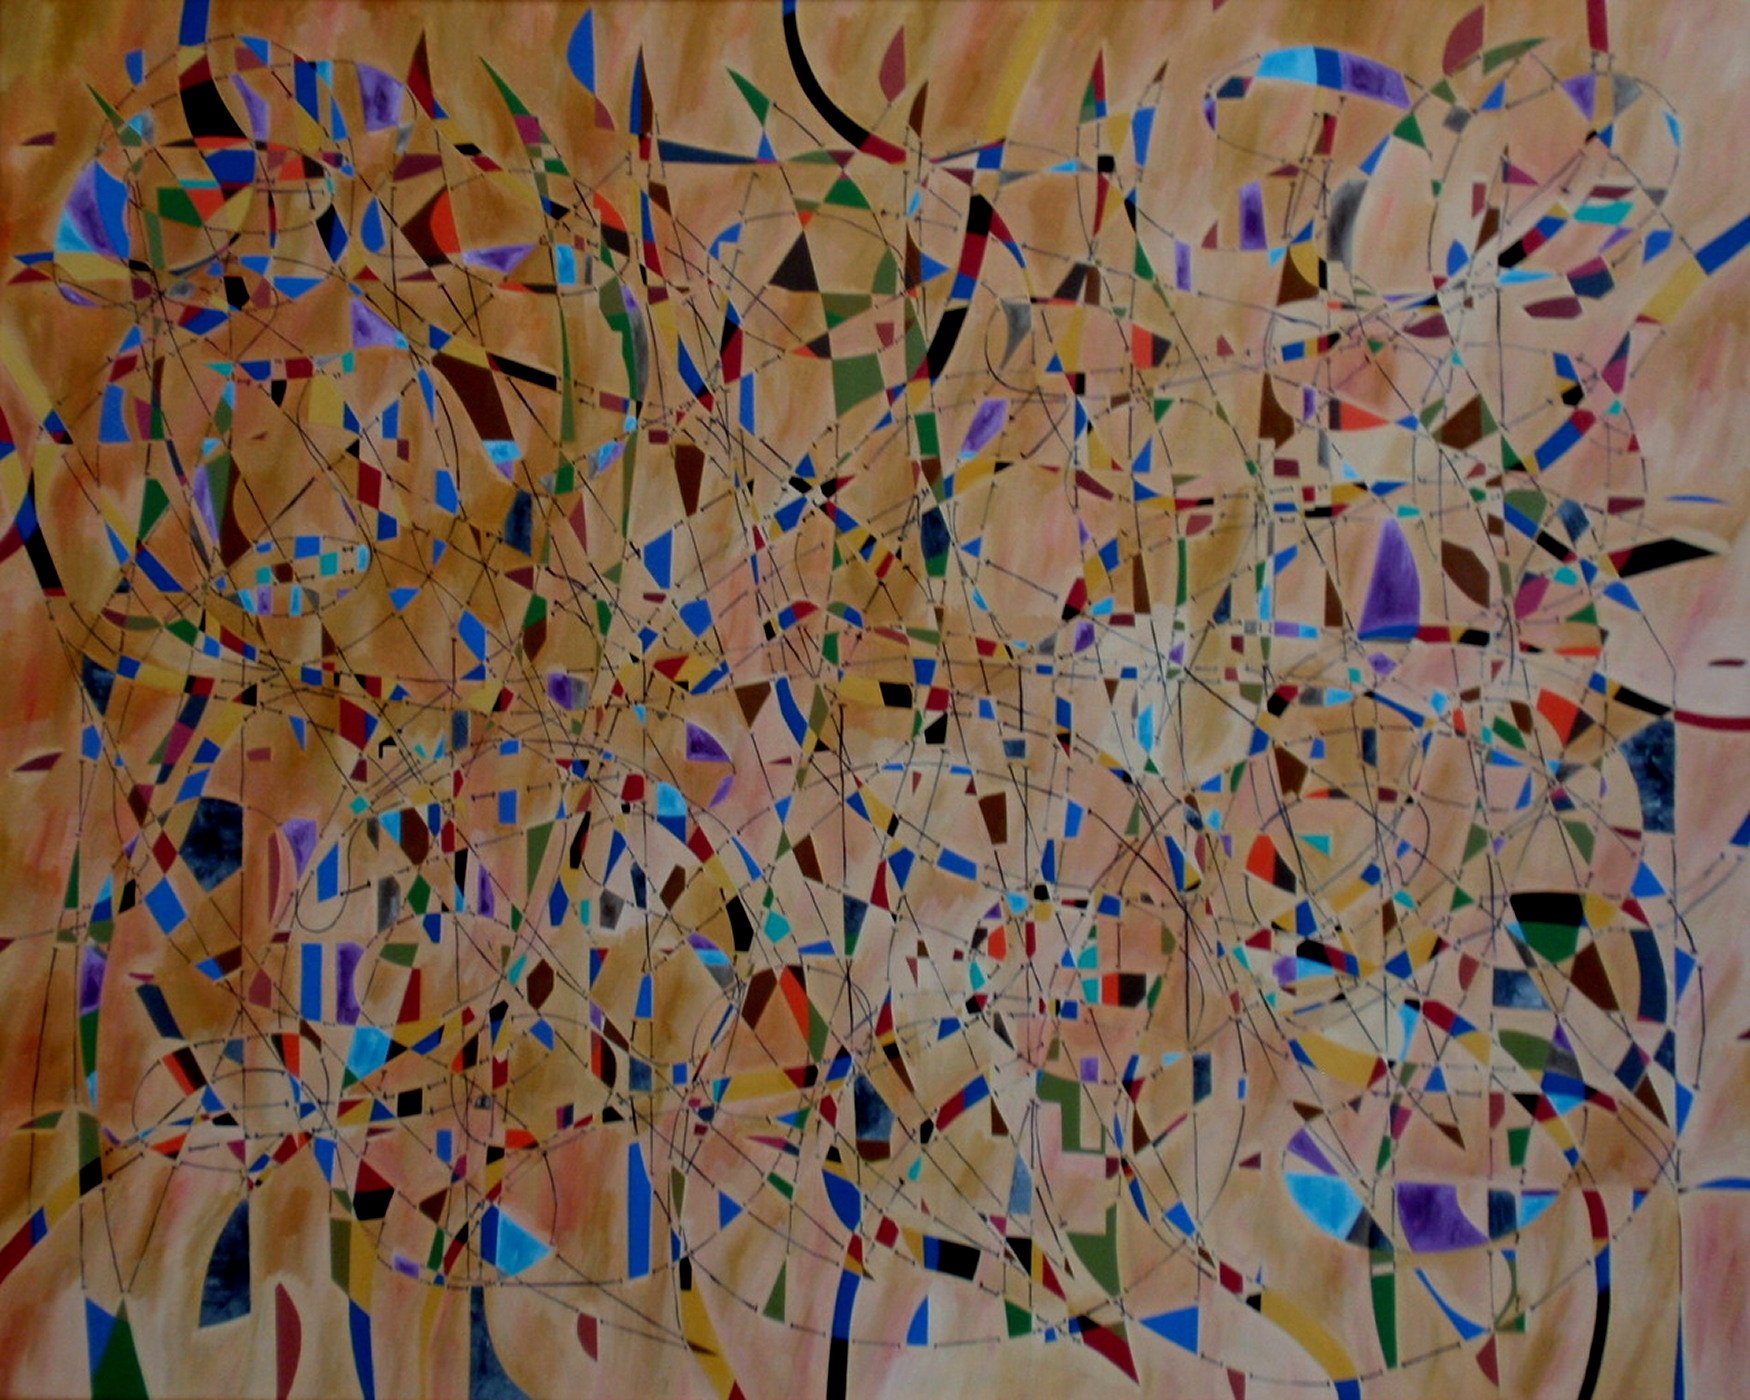 1990. Constellatie/Constellation. Oil on canvas. 80x100 cm.